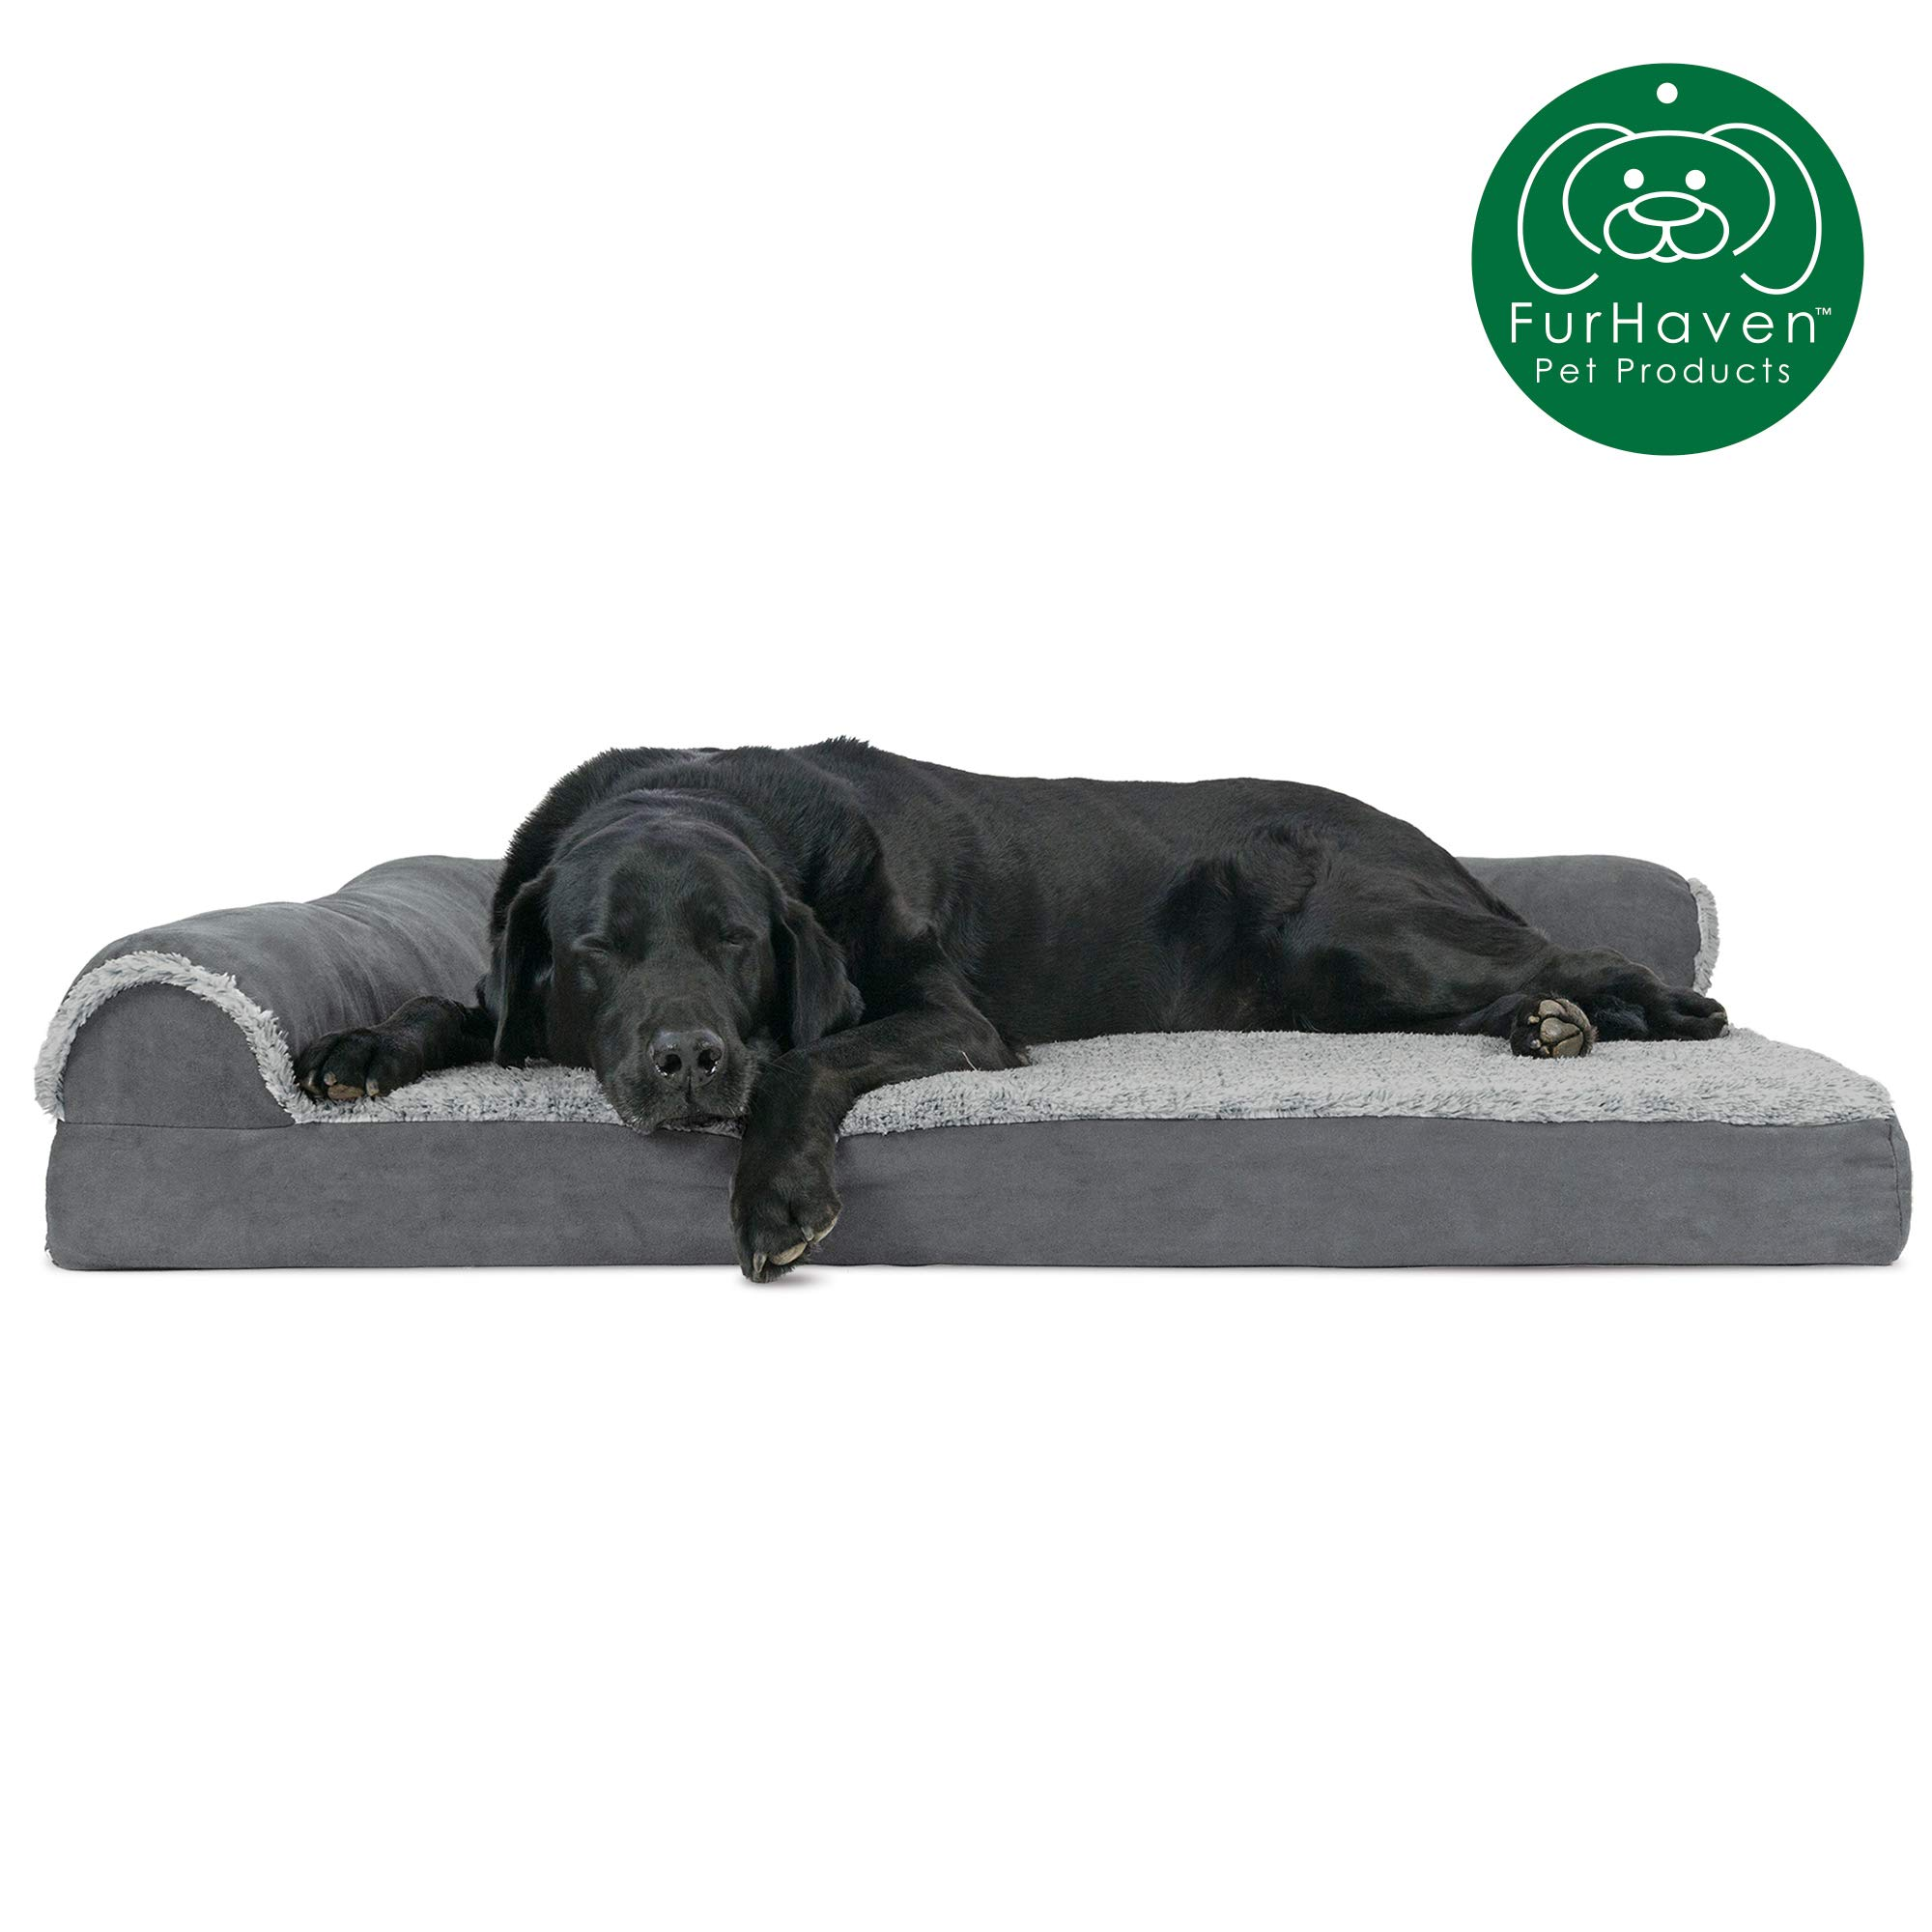 Furhaven Pet Dog Bed   Deluxe Orthopedic Two-Tone Plush Faux Fur & Suede L Shaped Chaise Lounge Living Room Corner Couch Pet Bed w/ Removable Cover for Dogs & Cats, Stone Gray, Jumbo by Furhaven